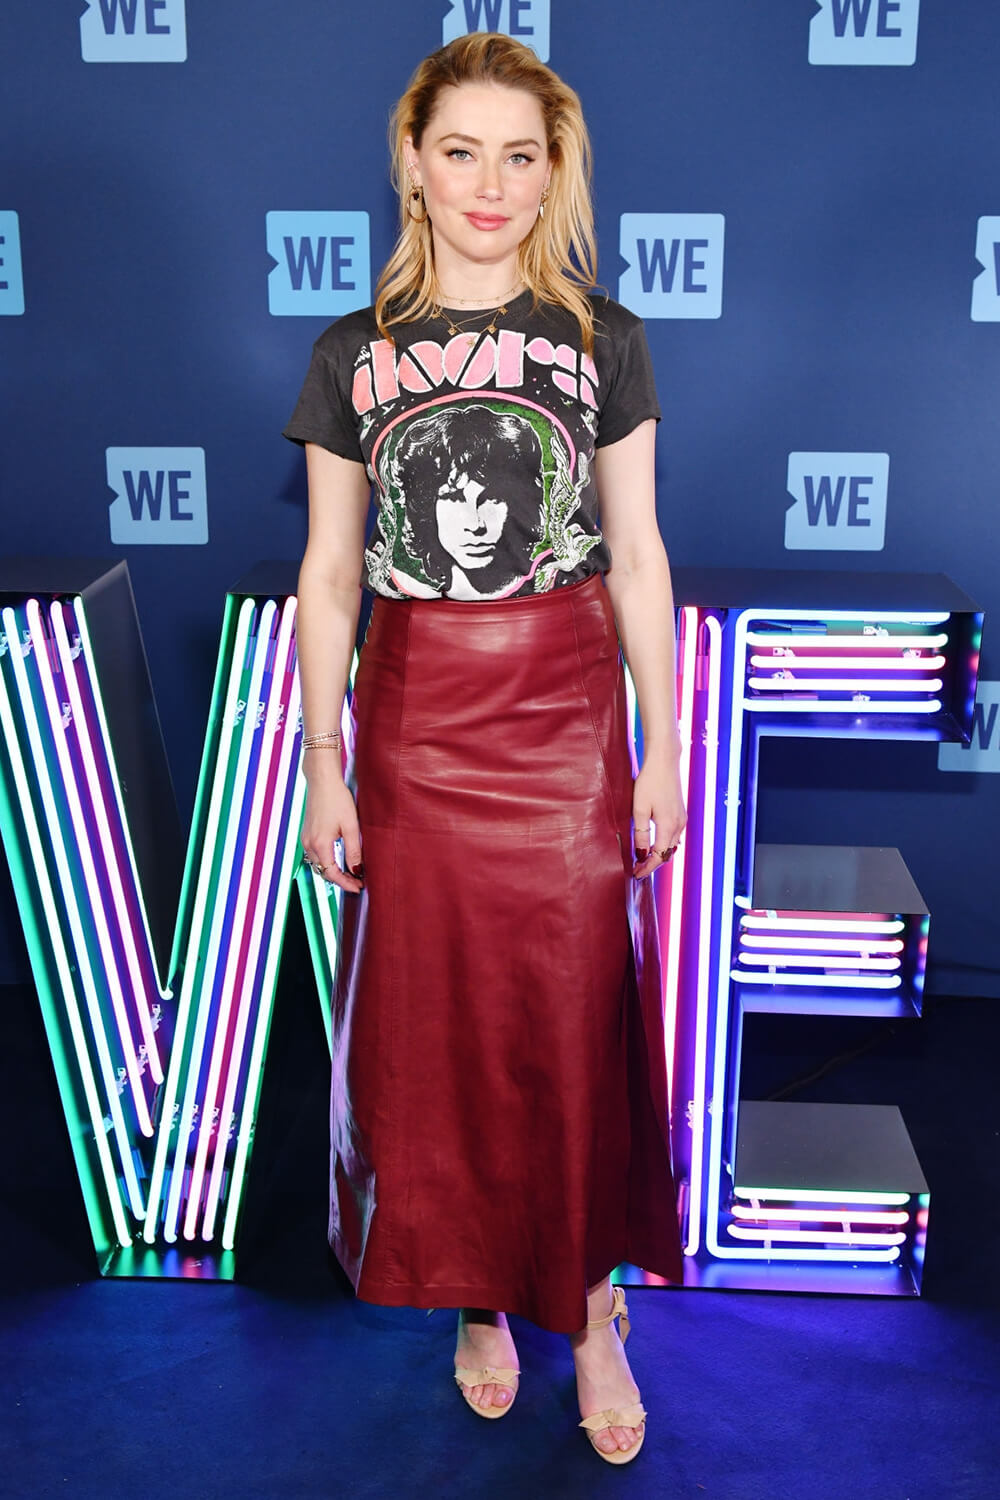 Amber Heard at WE Day New York